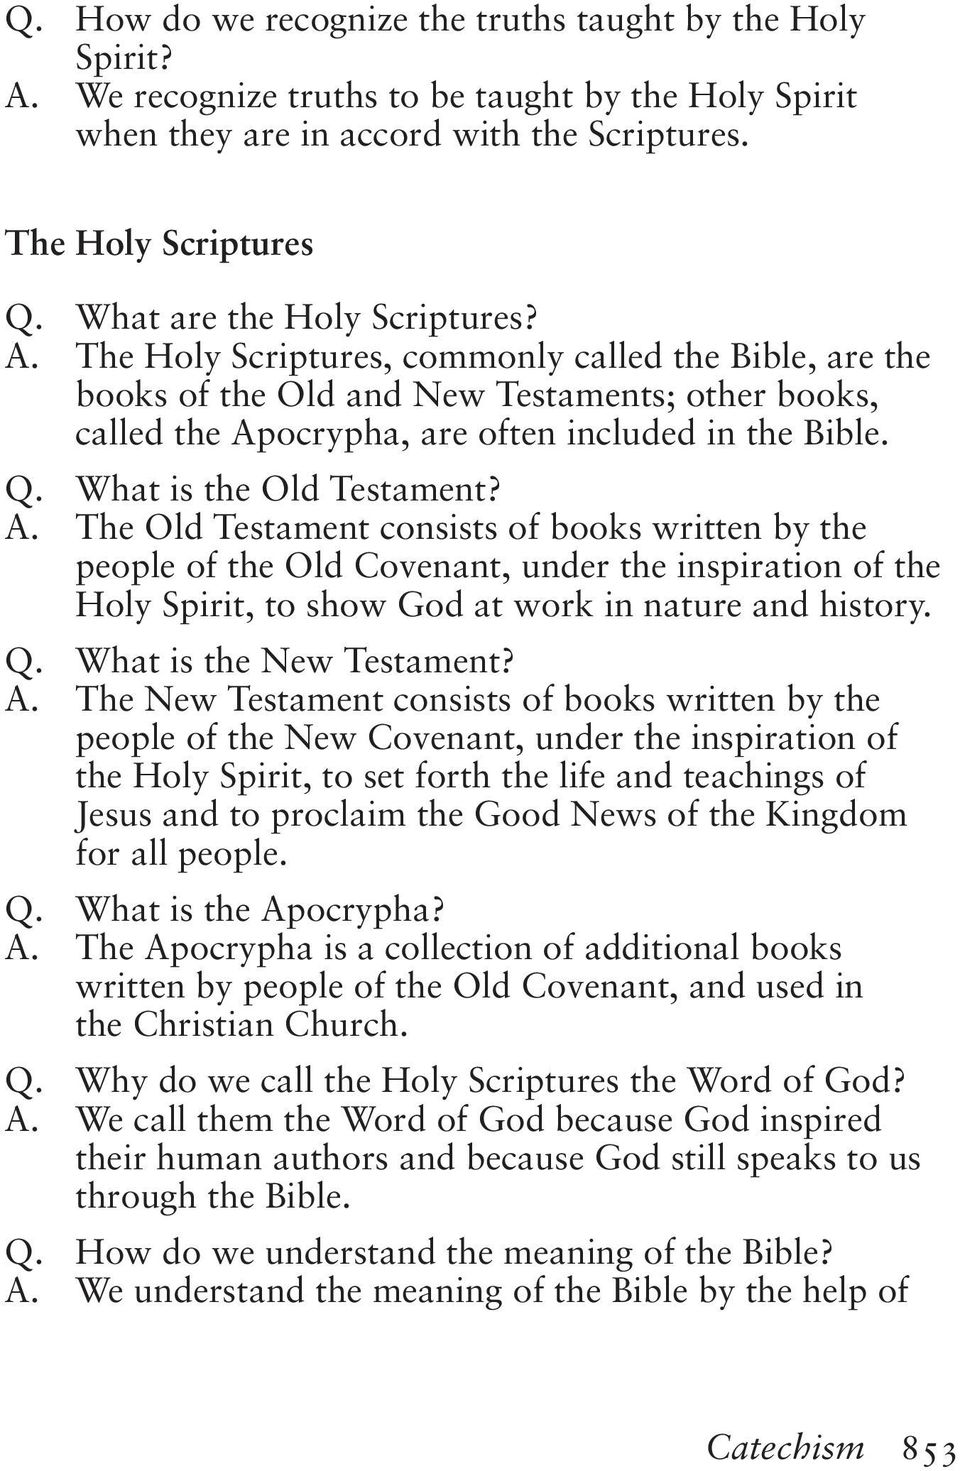 What is the Old Testament? A. The Old Testament consists of books written by the people of the Old Covenant, under the inspiration of the Holy Spirit, to show God at work in nature and history. Q.